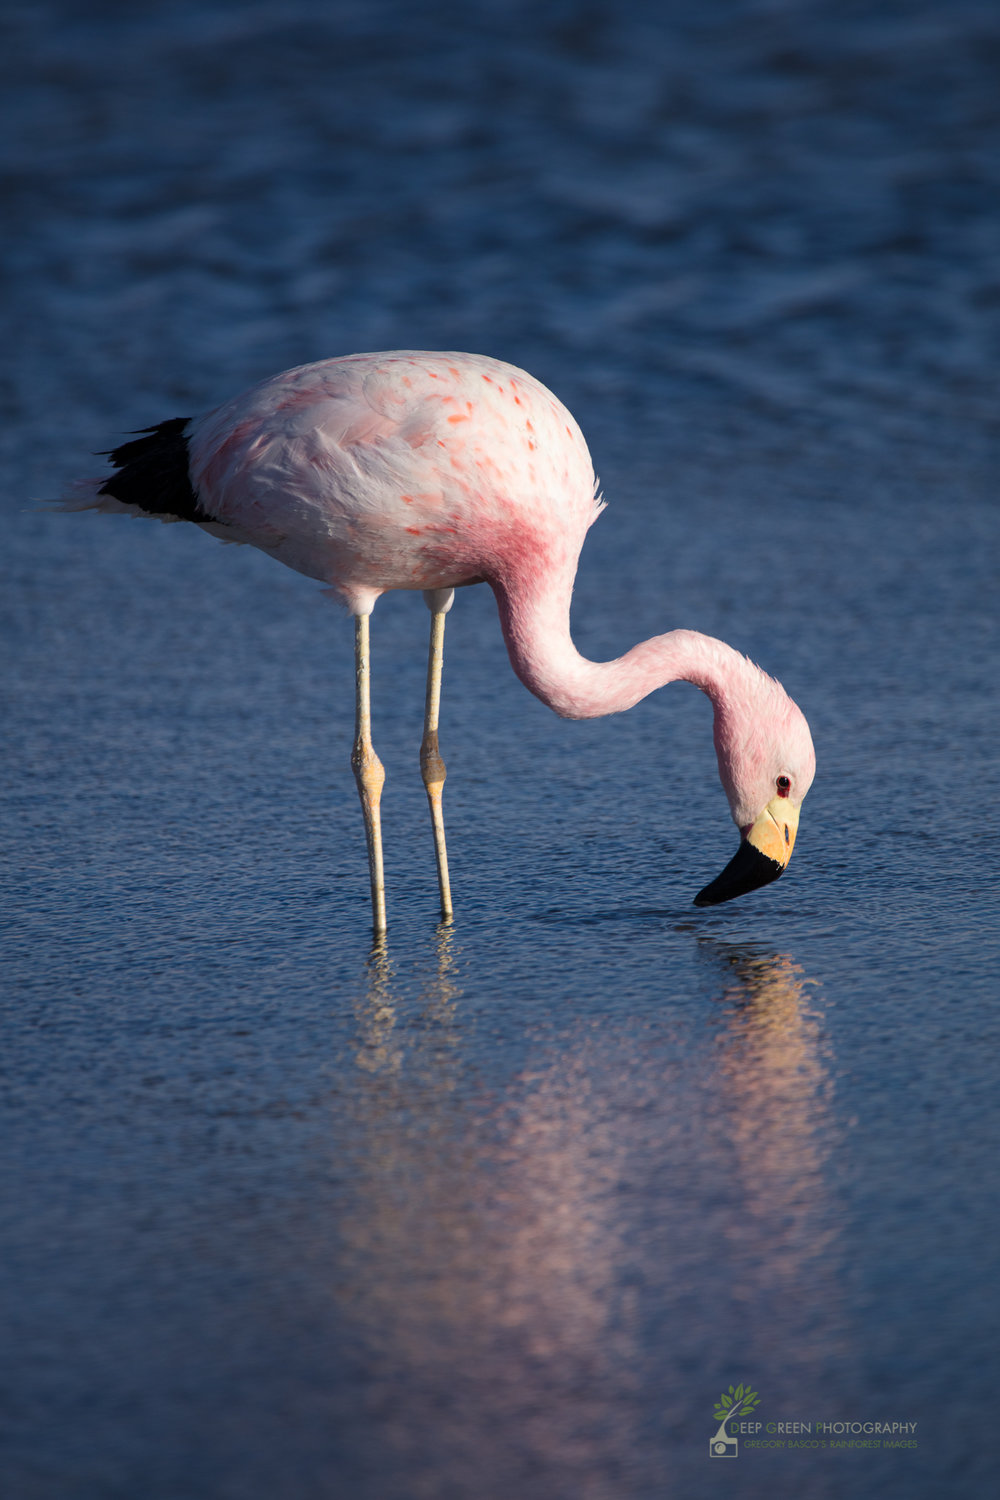 An Andean Flamingo searches for shrimp in a salt lake in the altiplano of the Atacama Desert in Chile